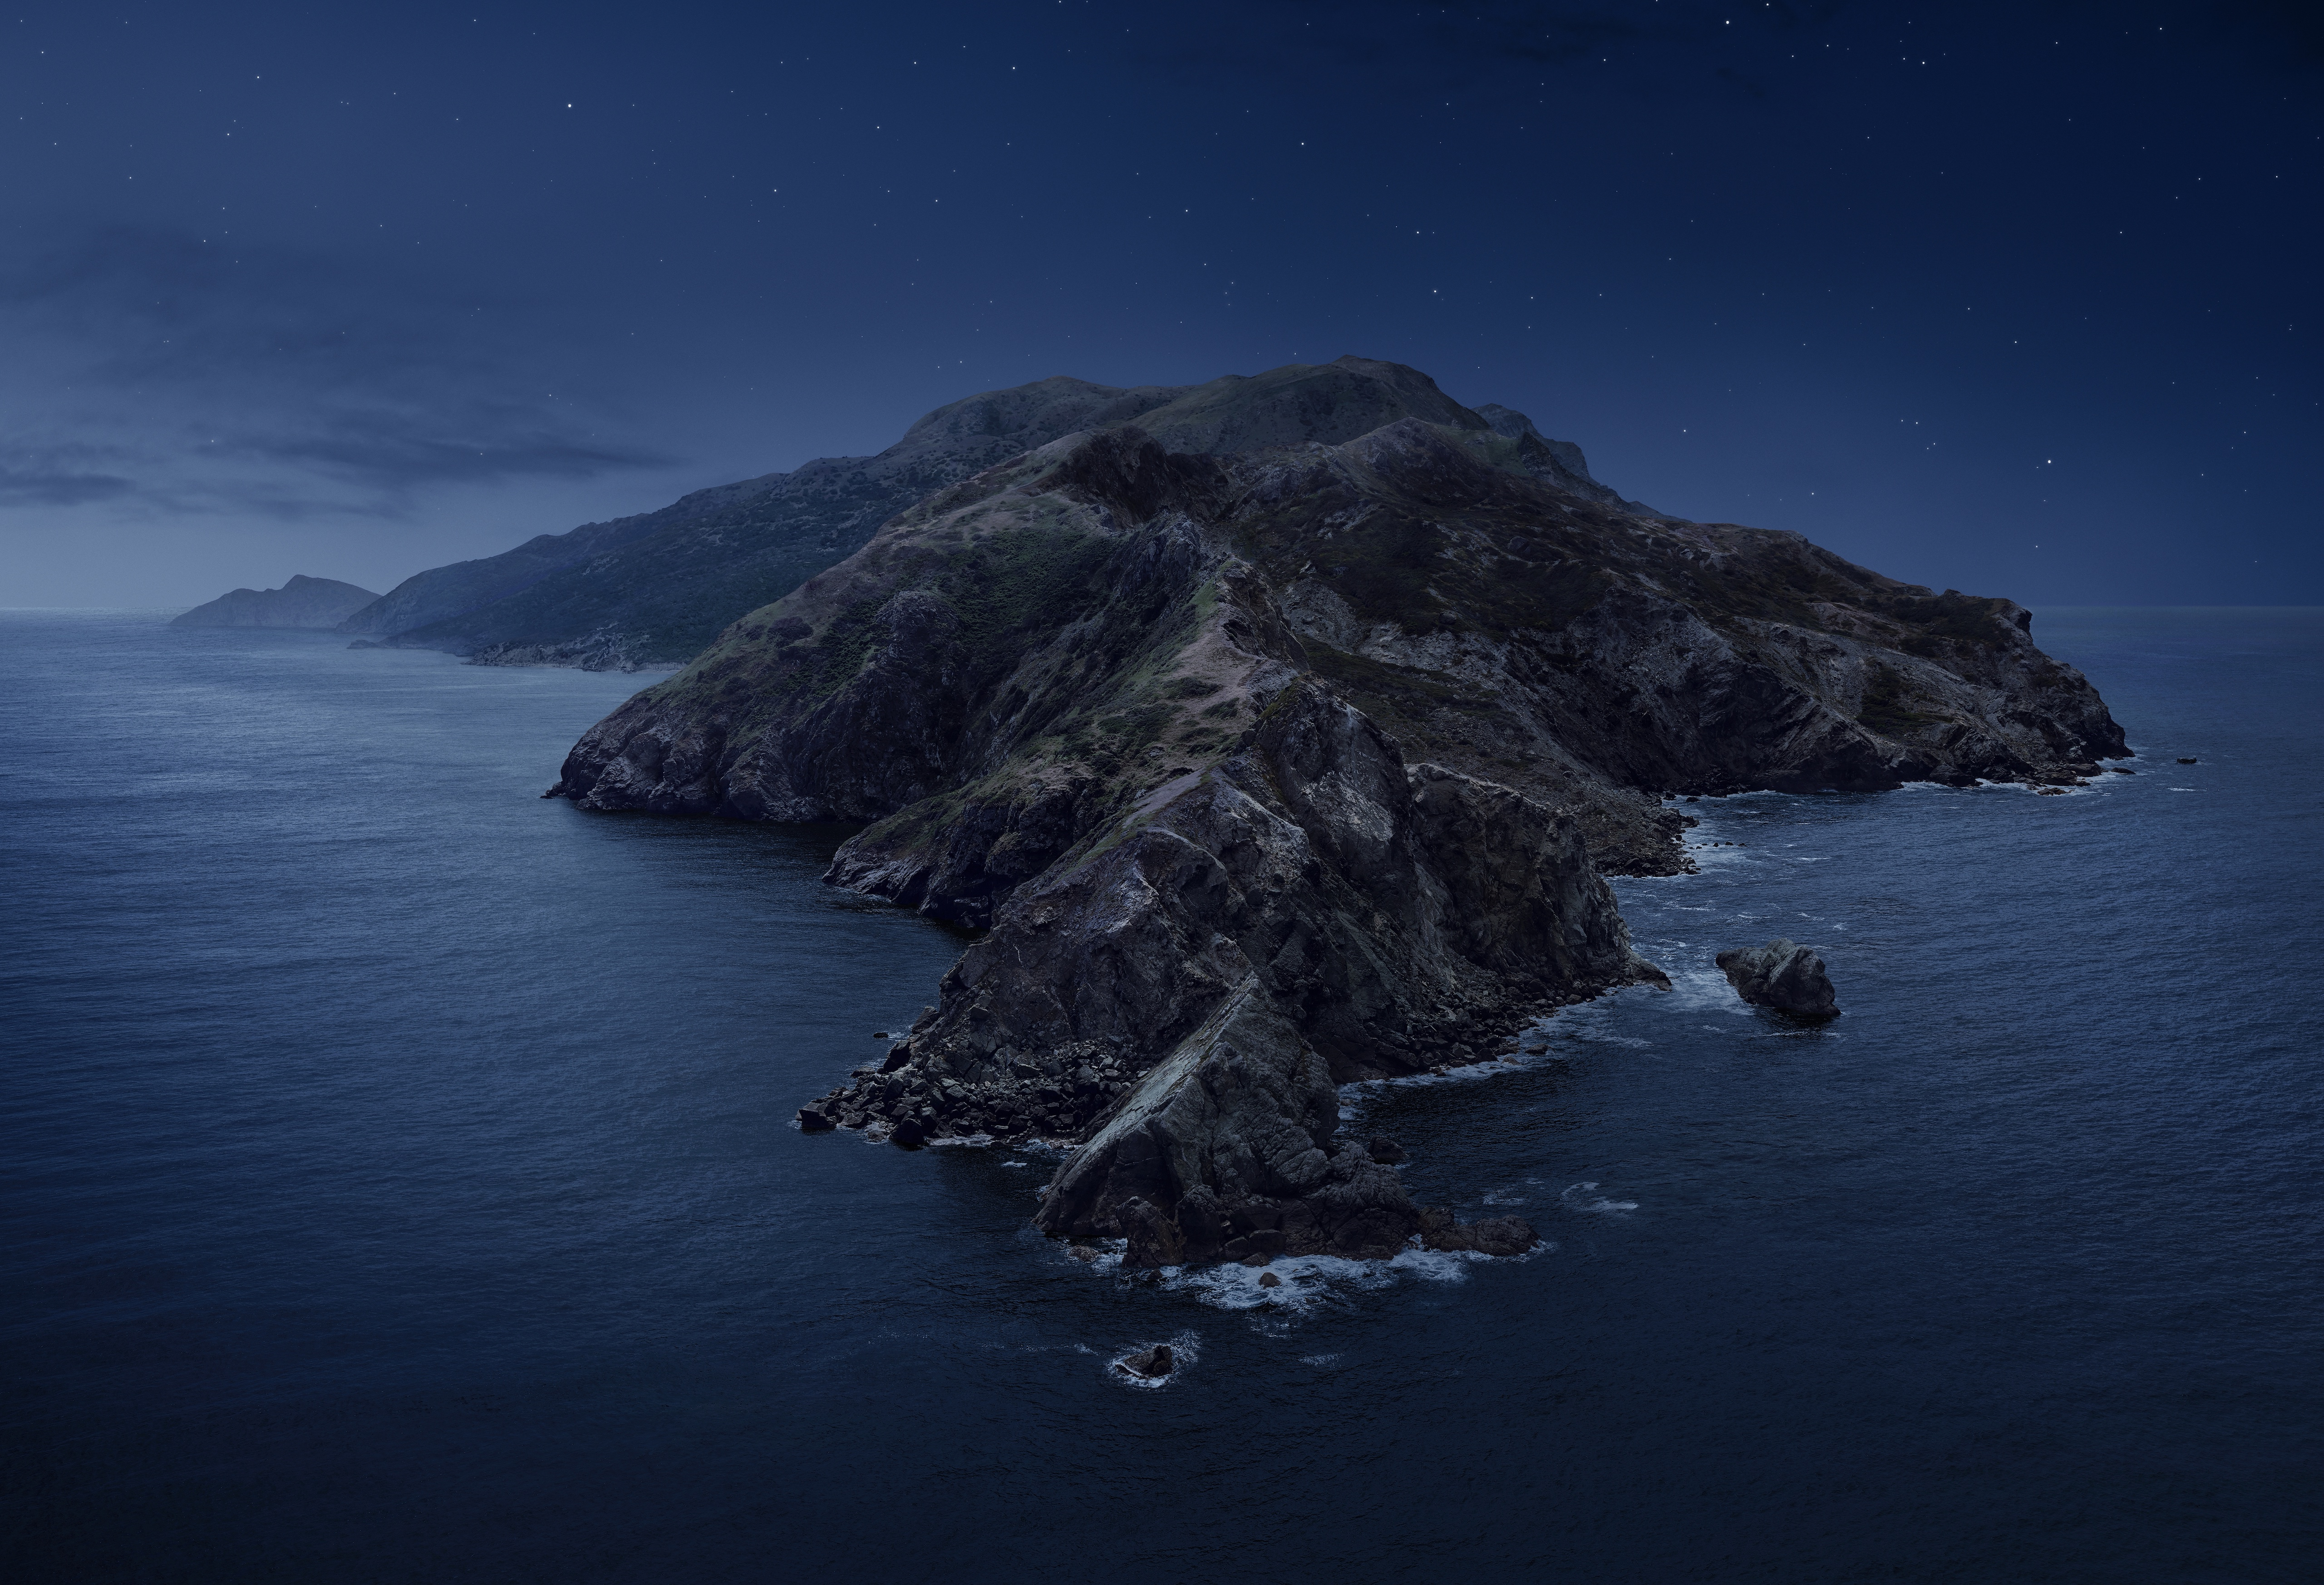 MacOS Catalina Default Wallpapers